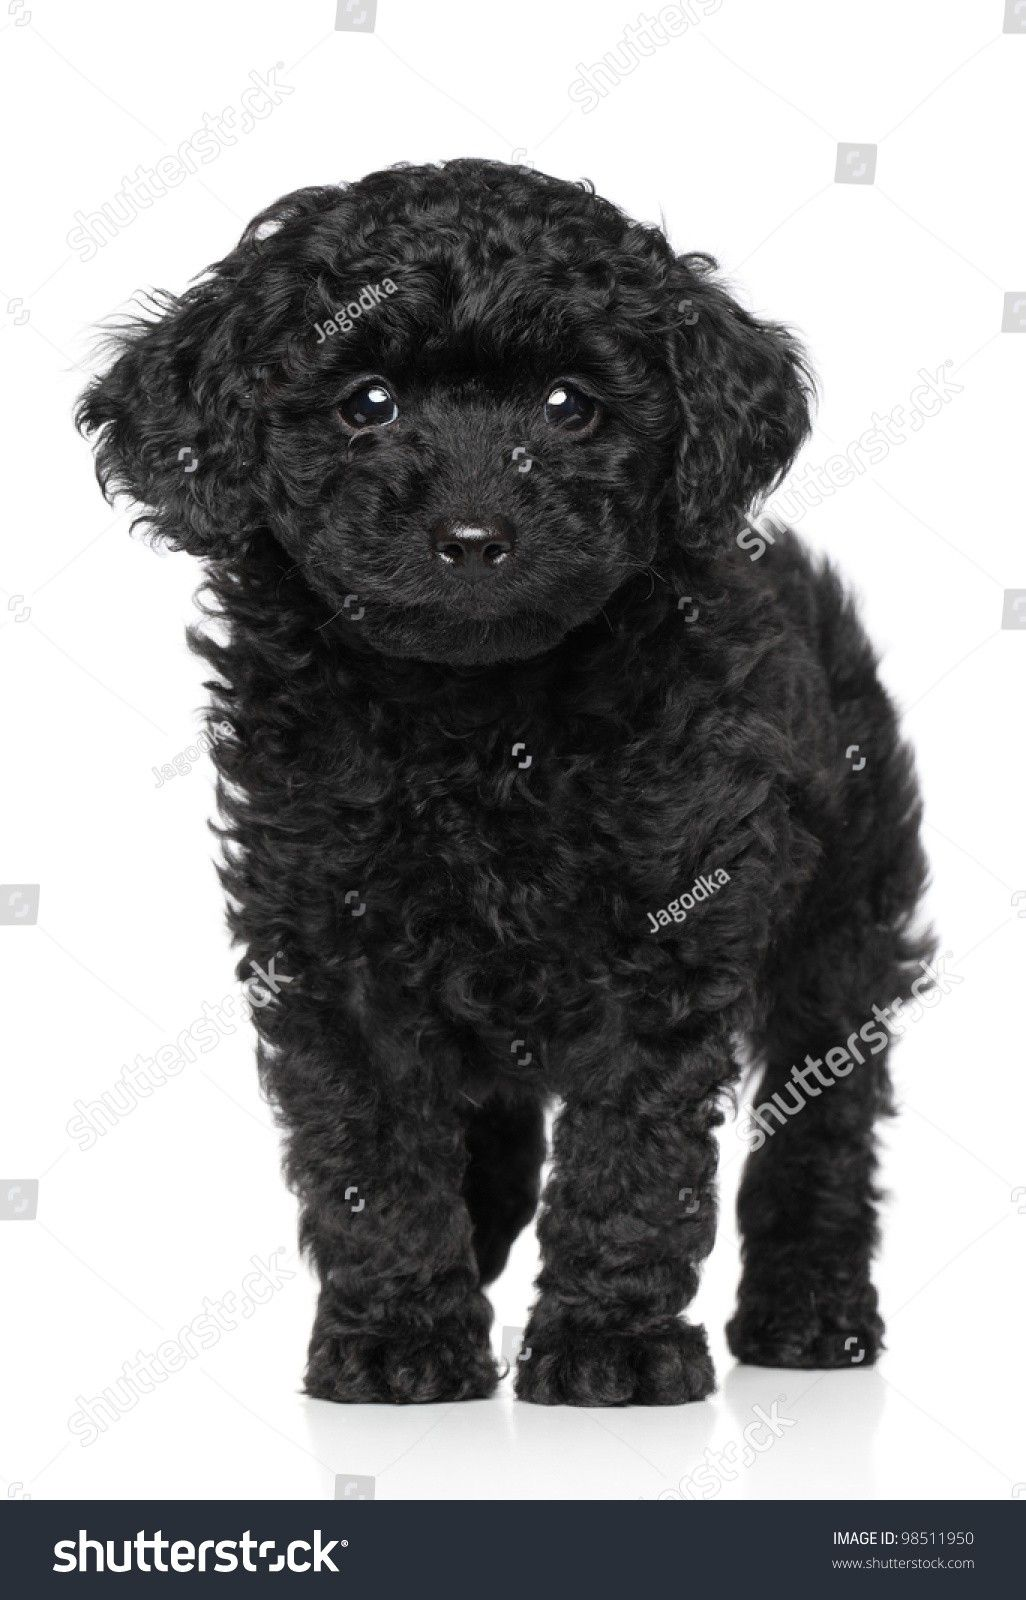 Black Toy Poodle Puppy Price References